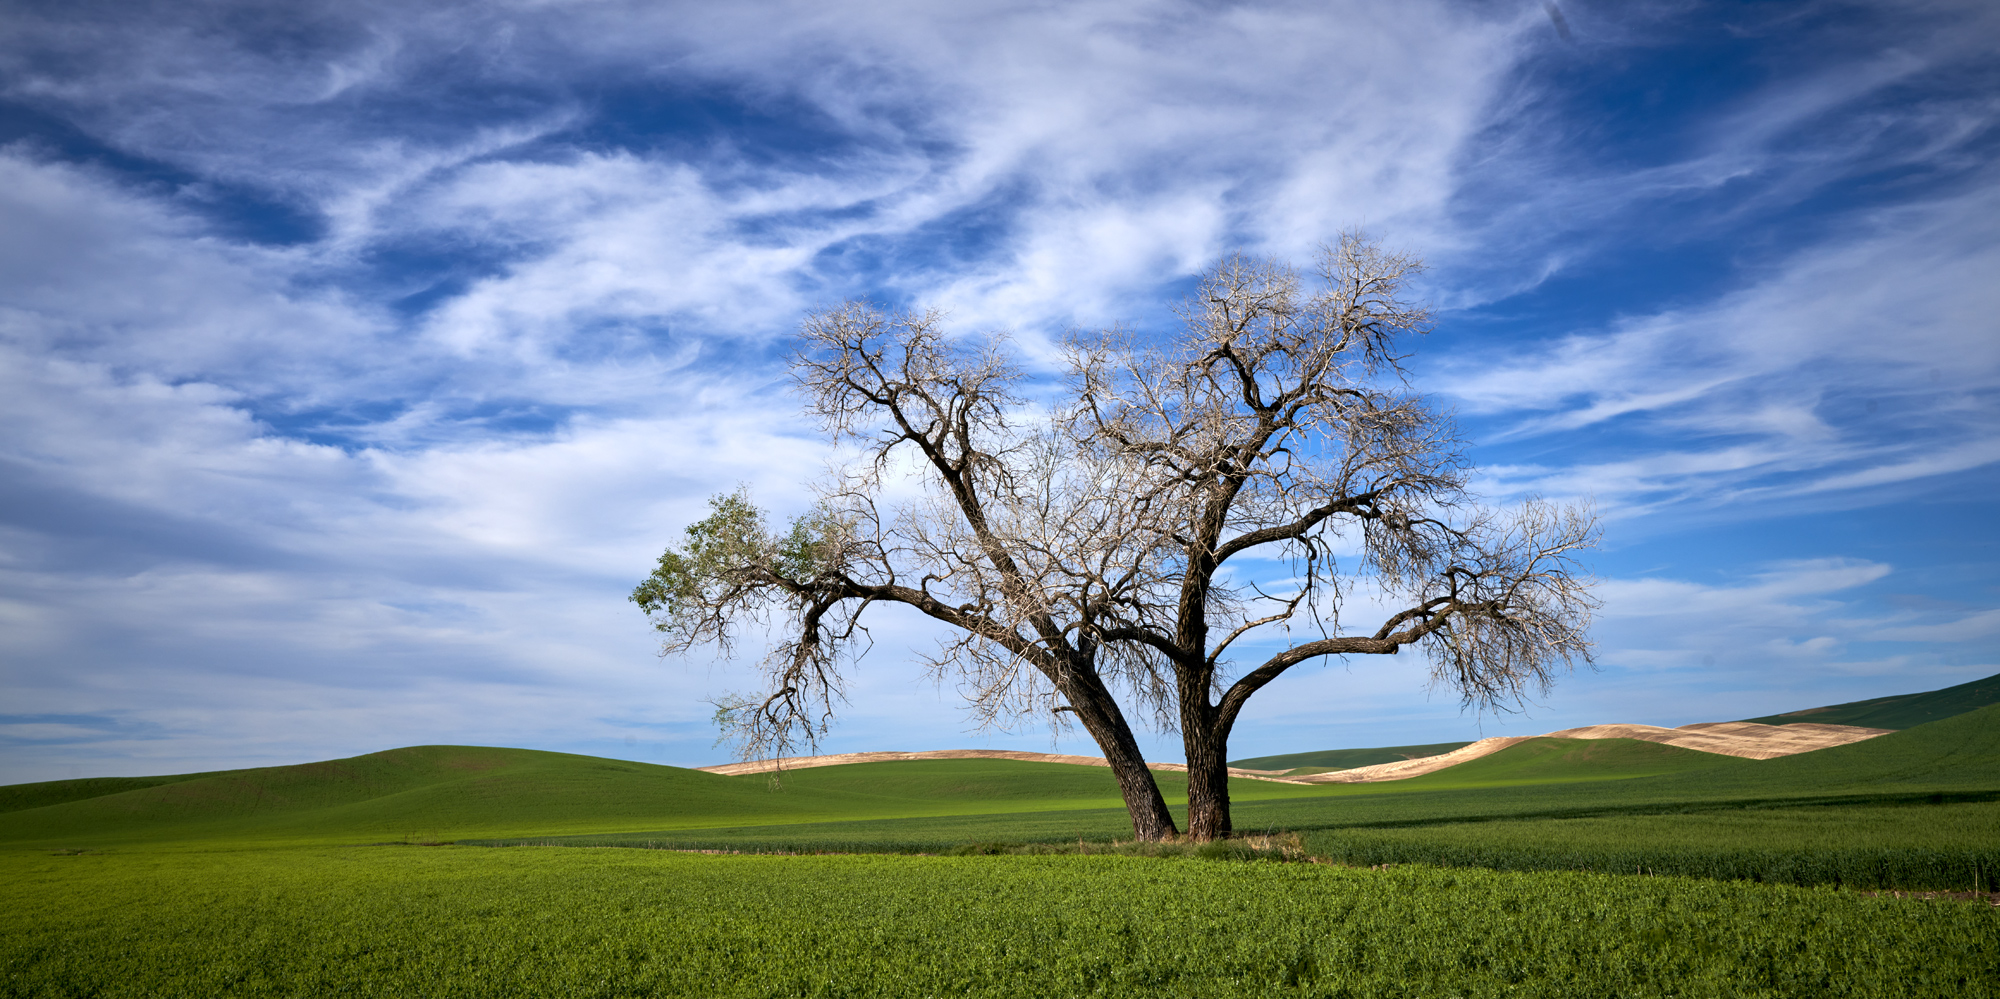 One of the more popular lone trees